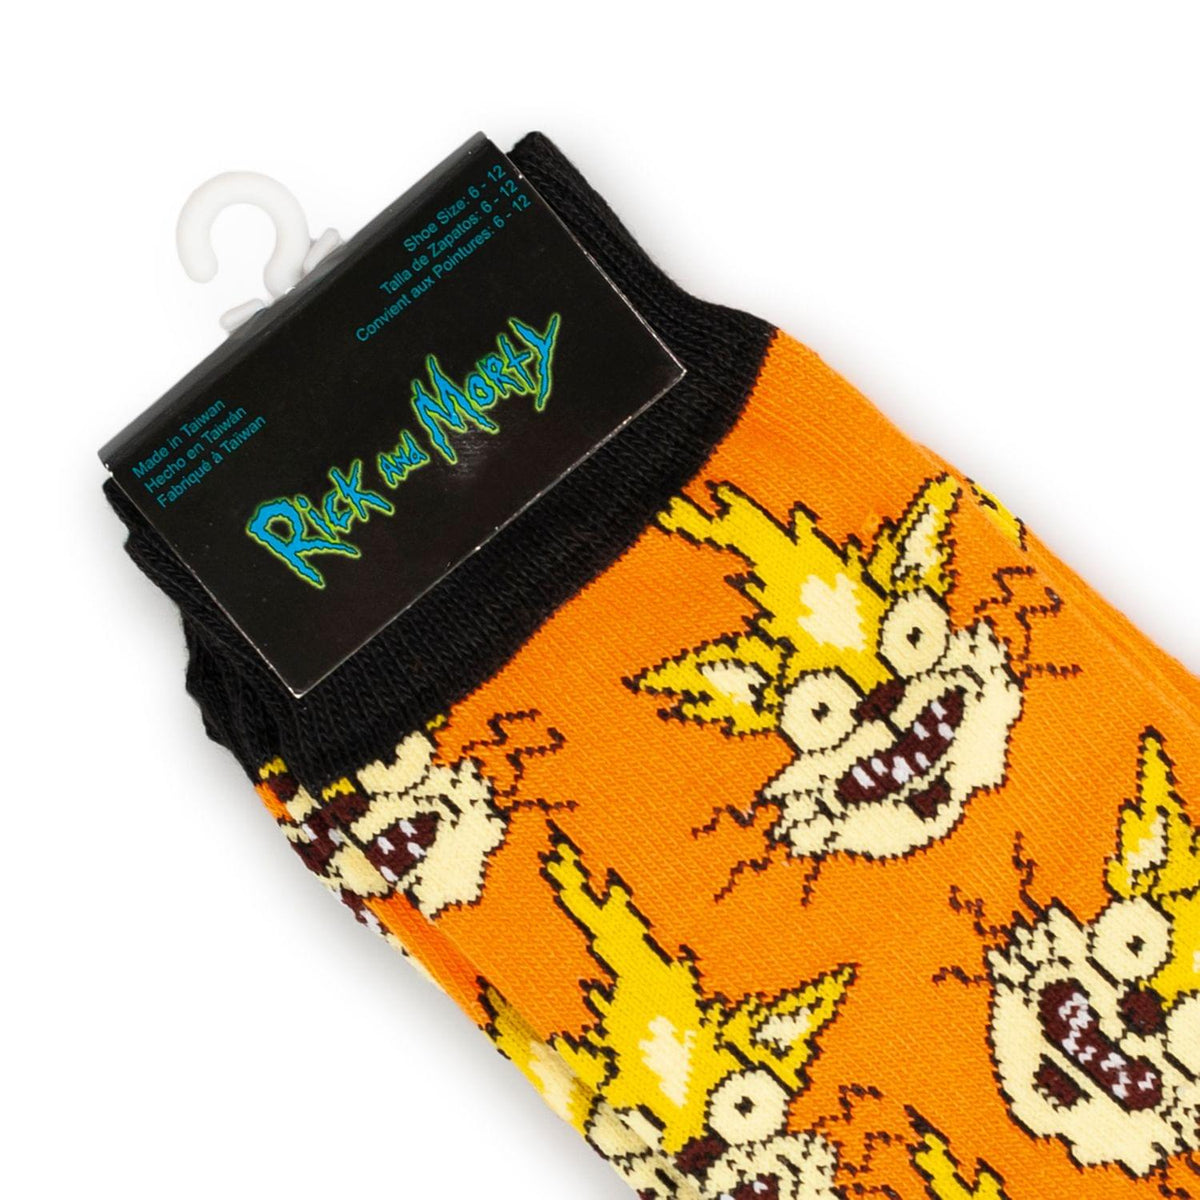 Rick and Morty Collectibles | Squanchy the Cat Orange Crew Socks